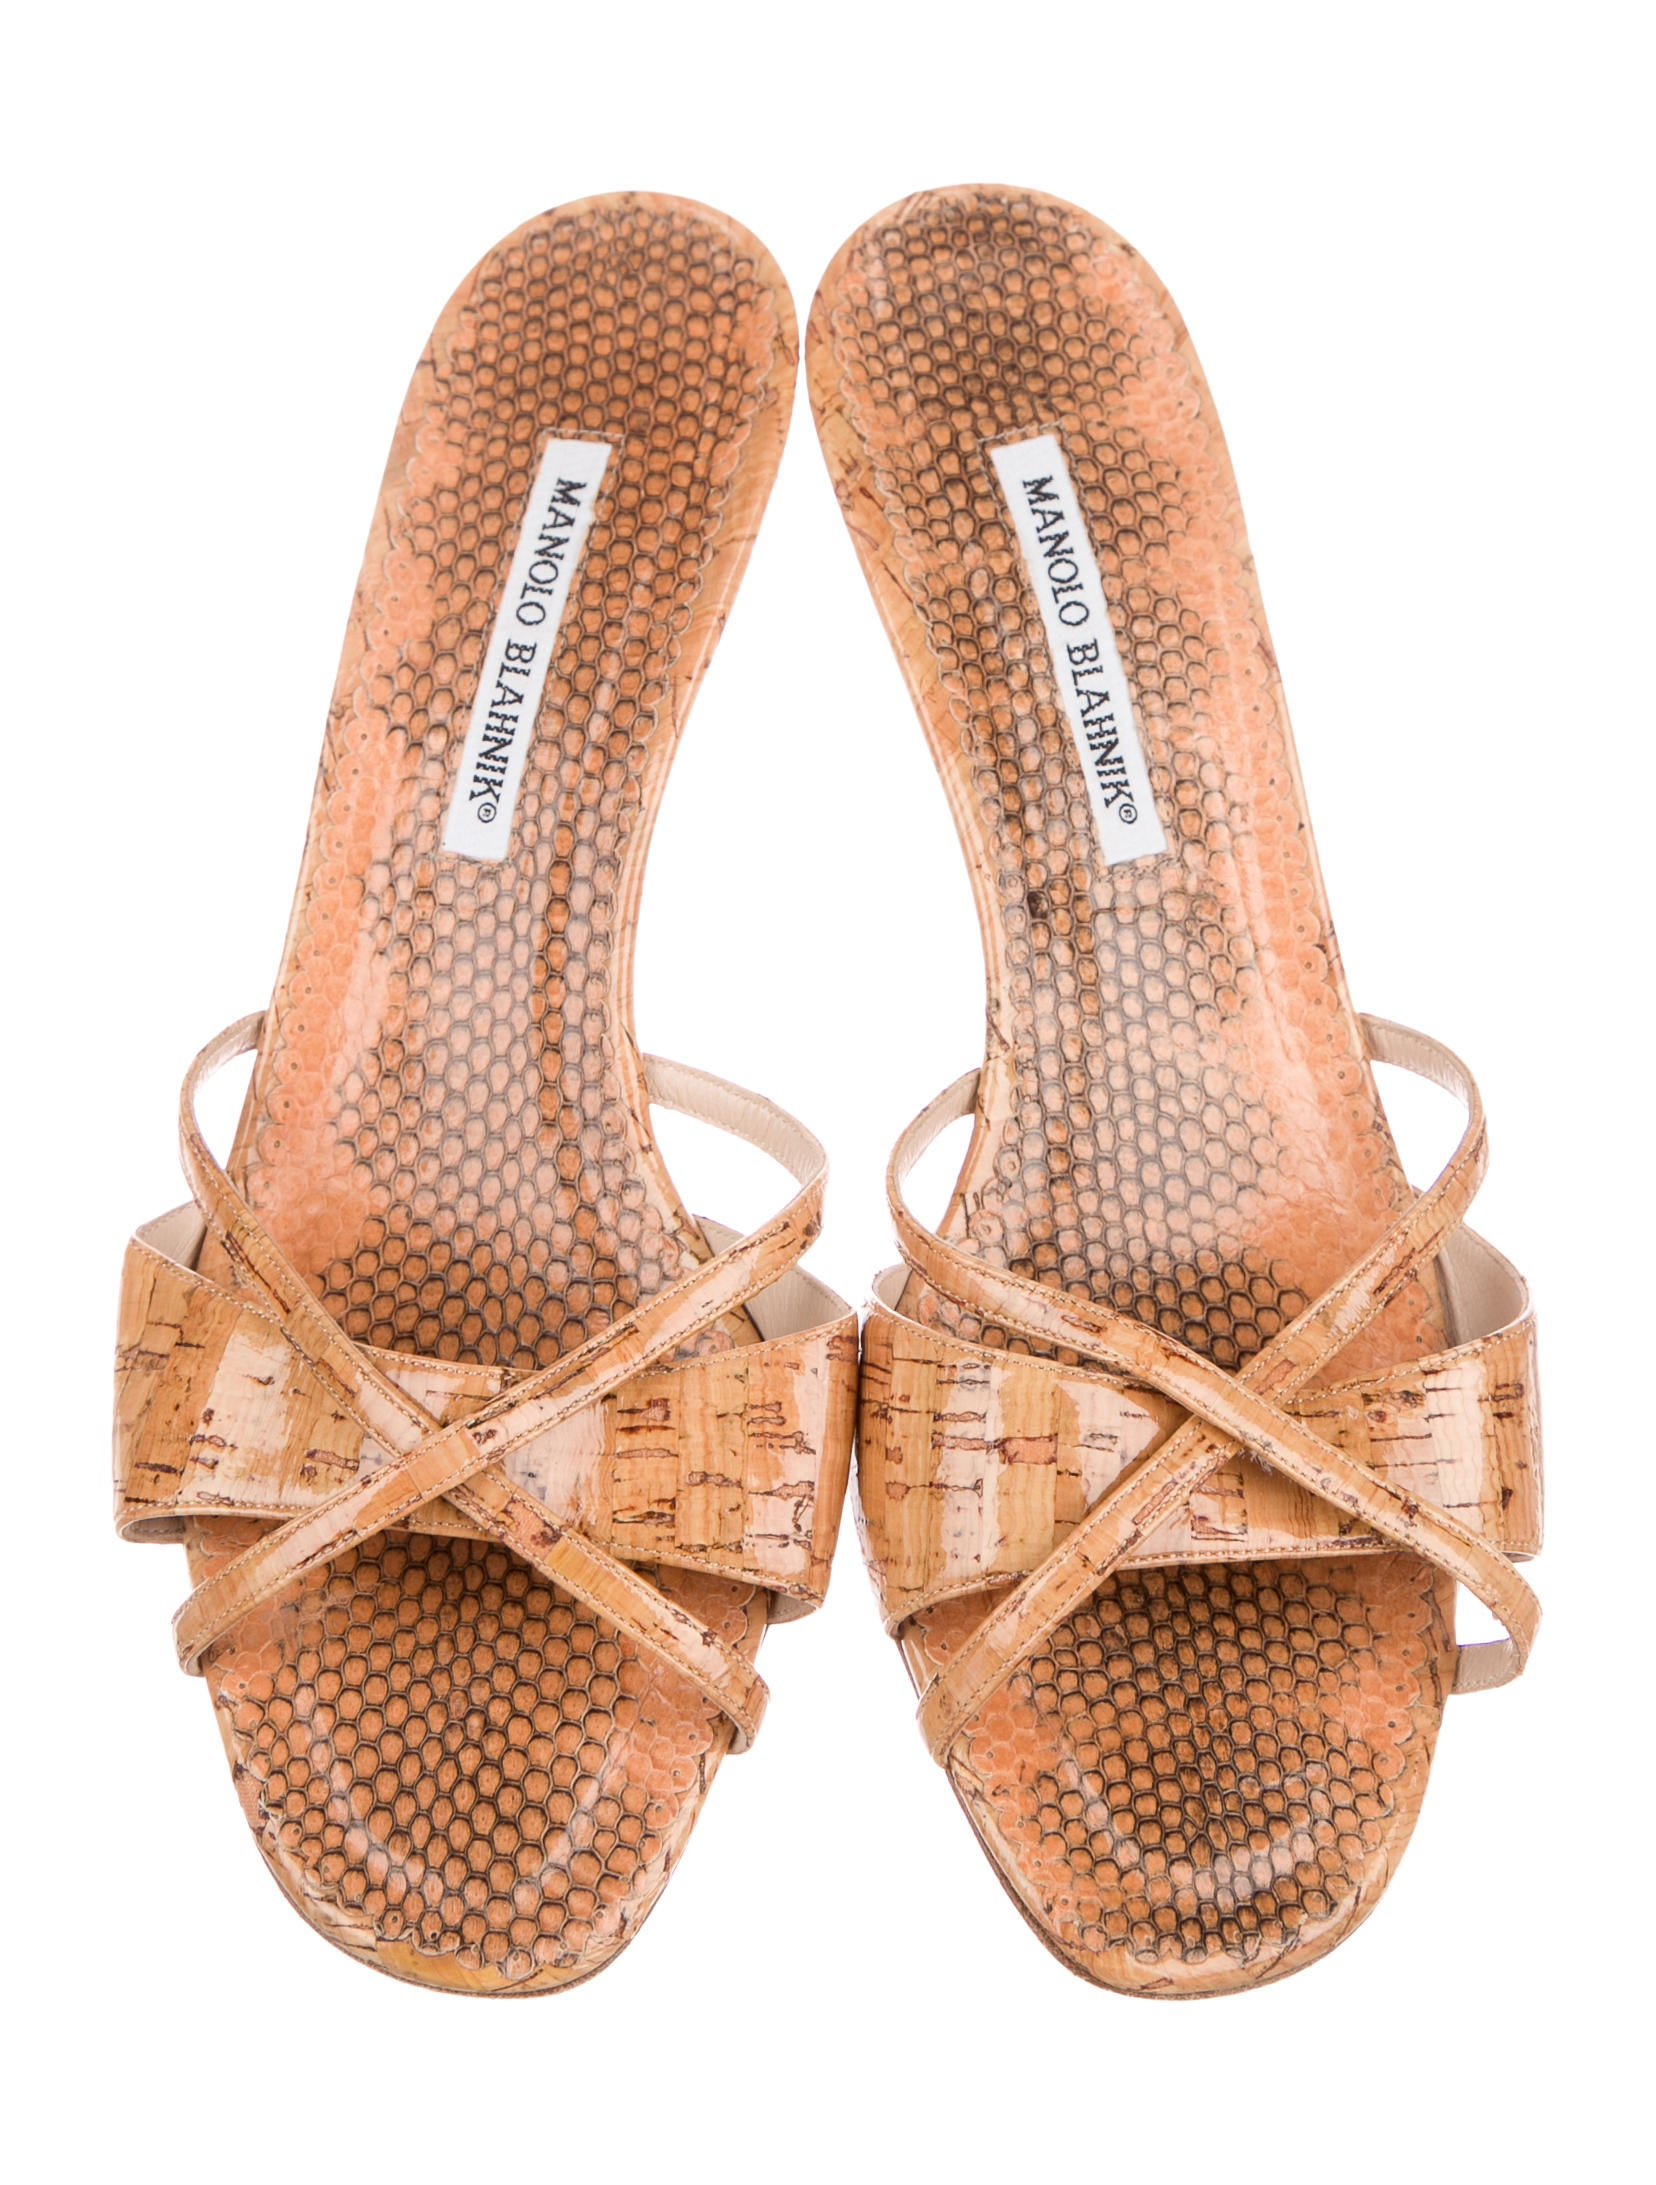 free shipping release dates sale newest Manolo Blahnik Lee Cork Slide Sandals outlet cheapest price how much cheap online icdrTa1K